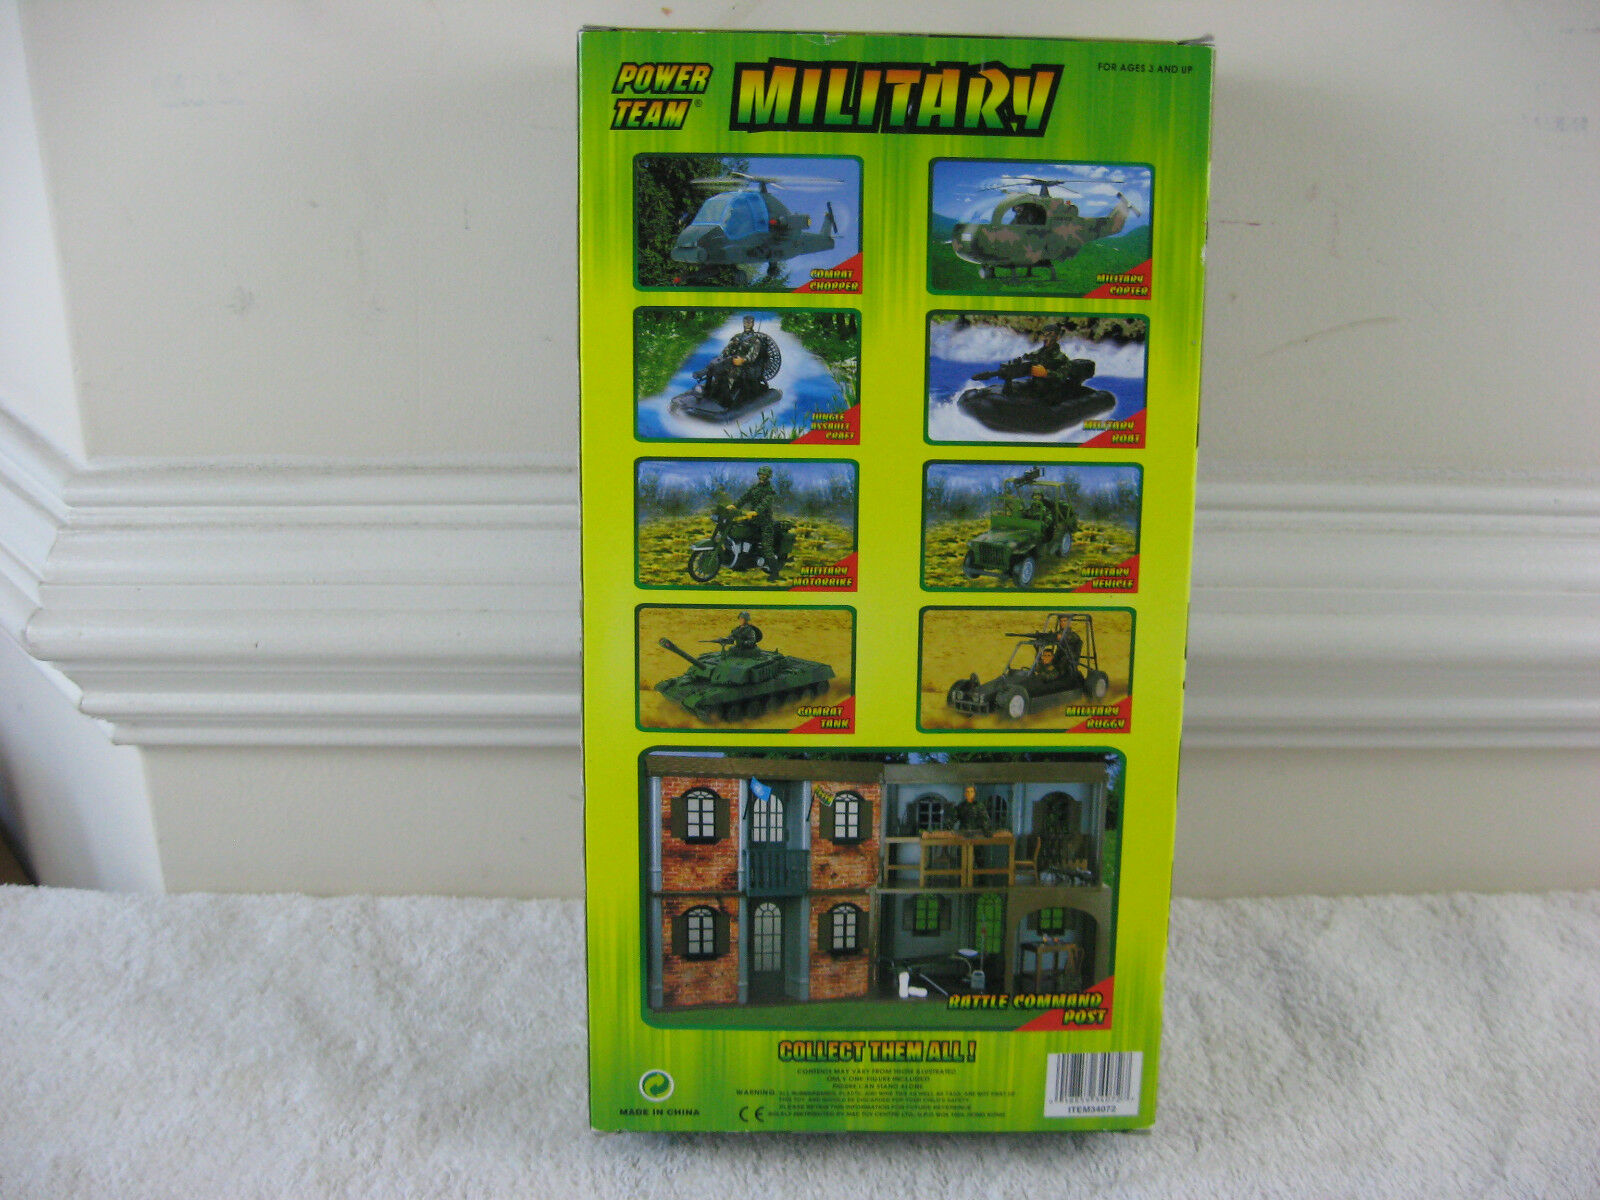 Power Team Military 12  Delta Force Action Action Action Figure-New 3cf836